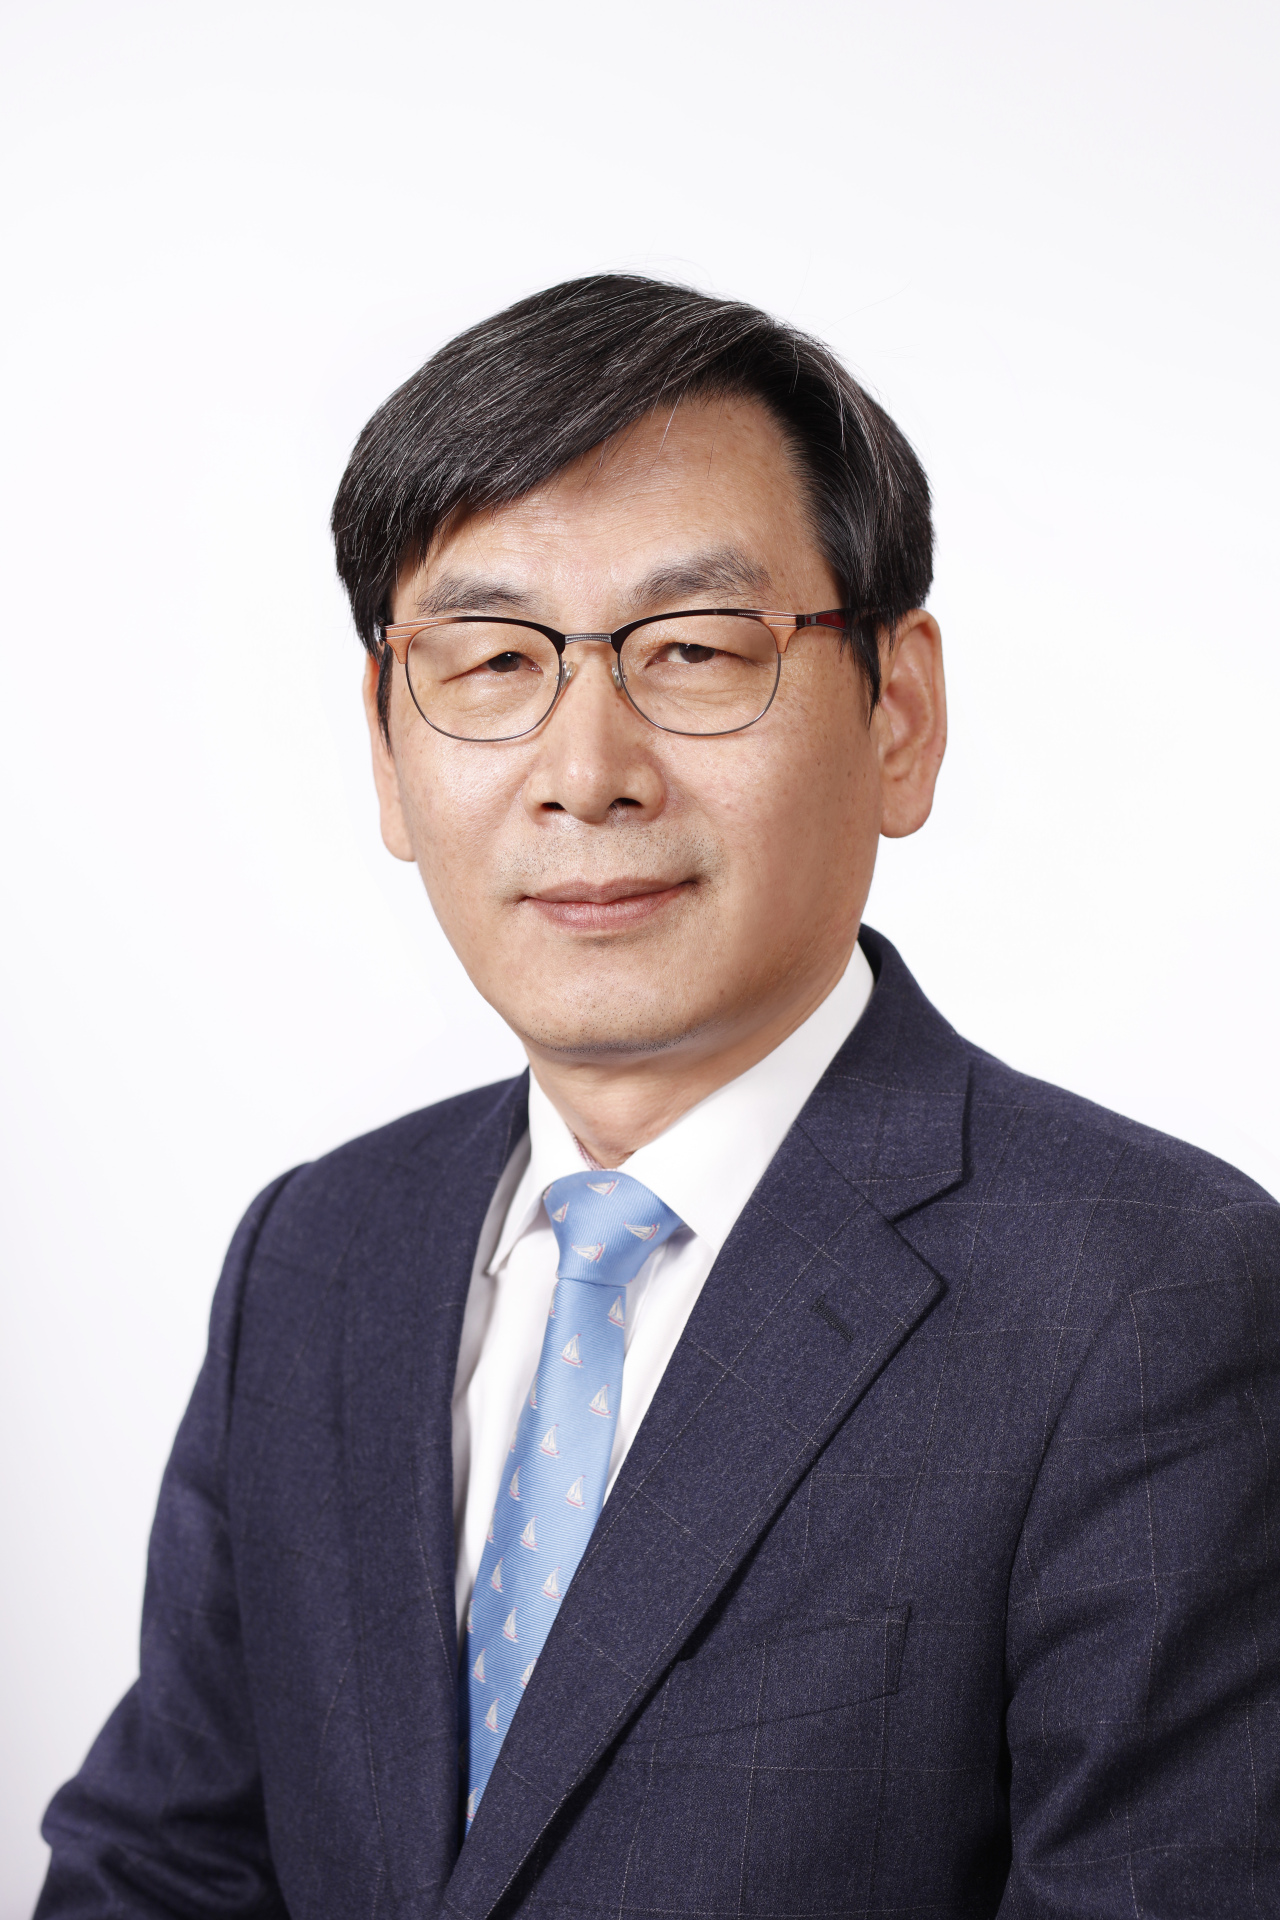 Uhm Jae-sik (Nuclear Safety and Security Commission)